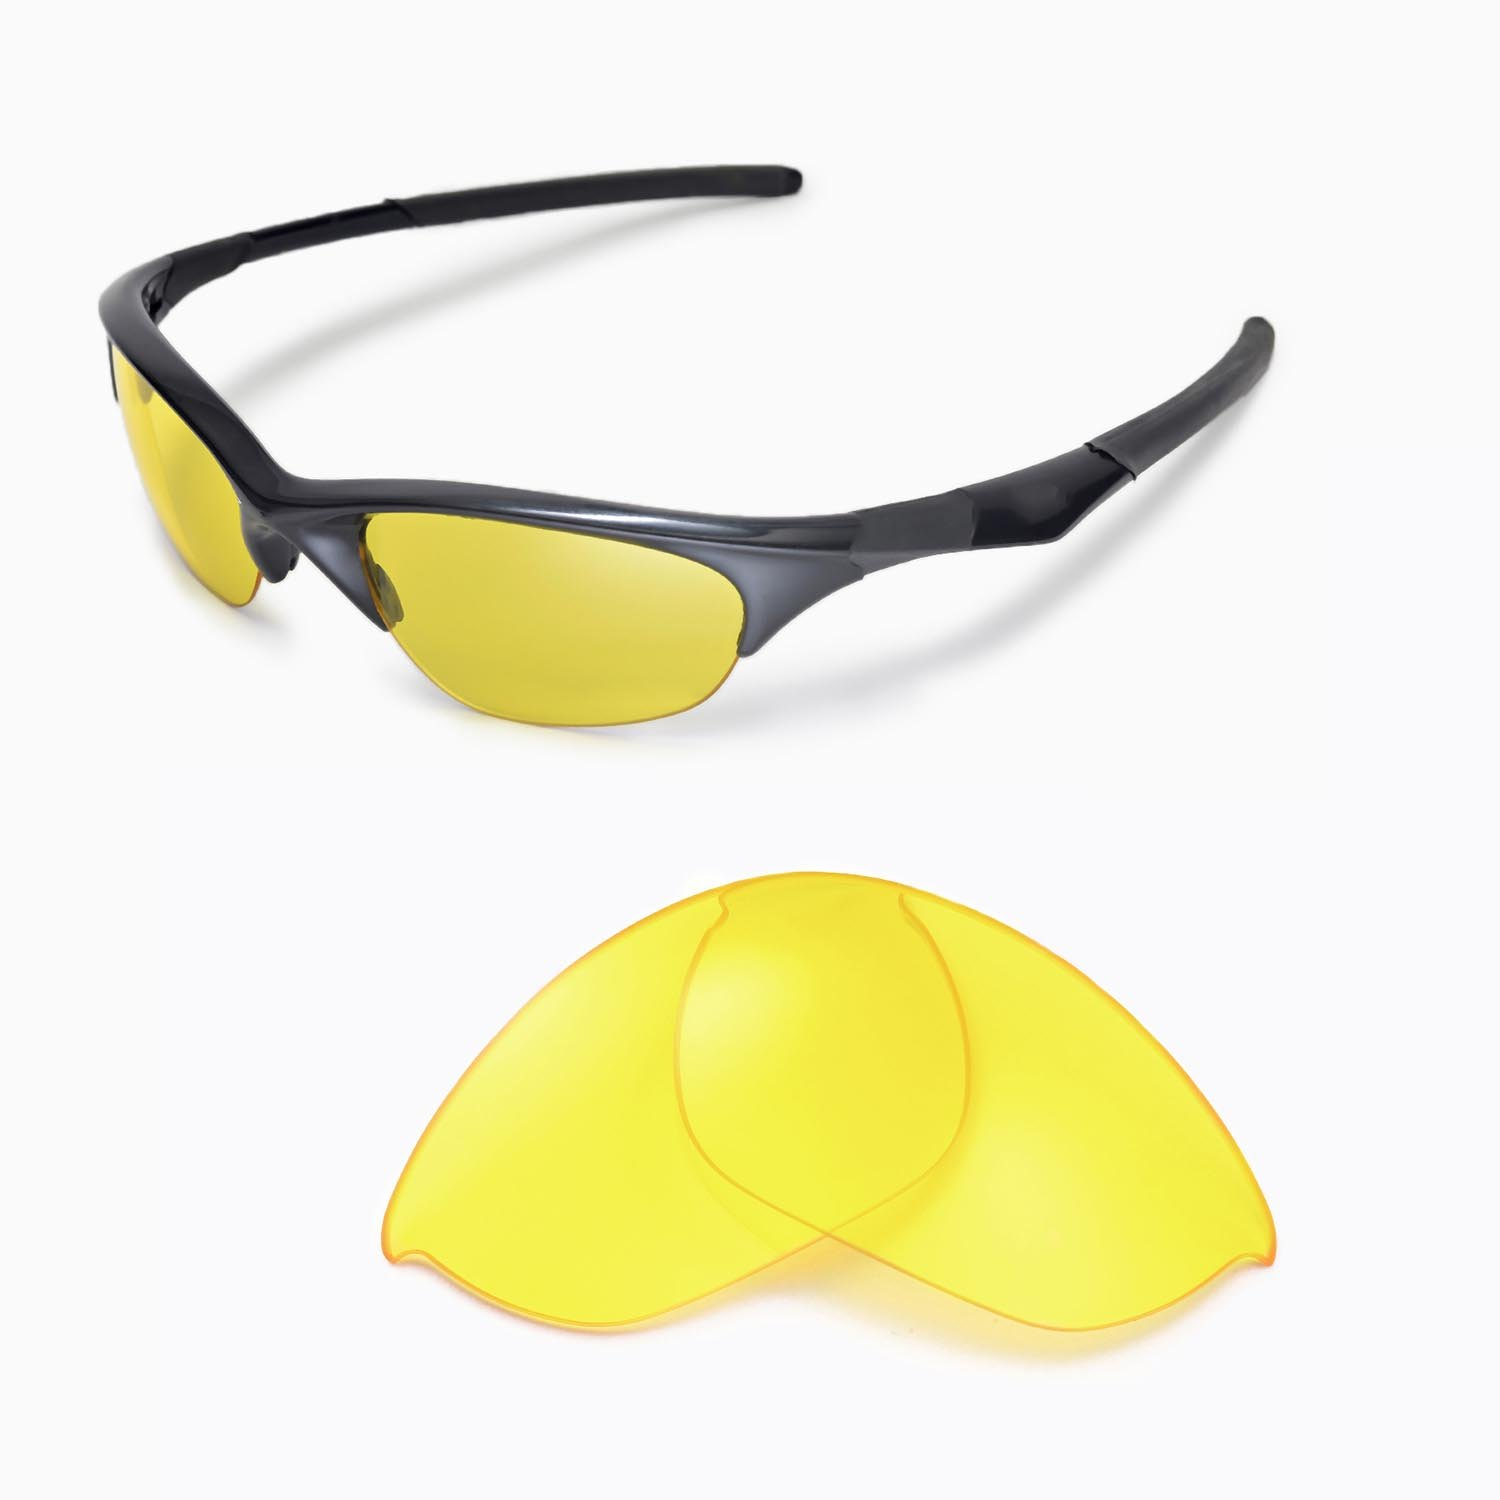 Walleva Replacement Lenses for Oakley Half Jacket Sunglasses - Multiple Options Available (Yellow) by Walleva